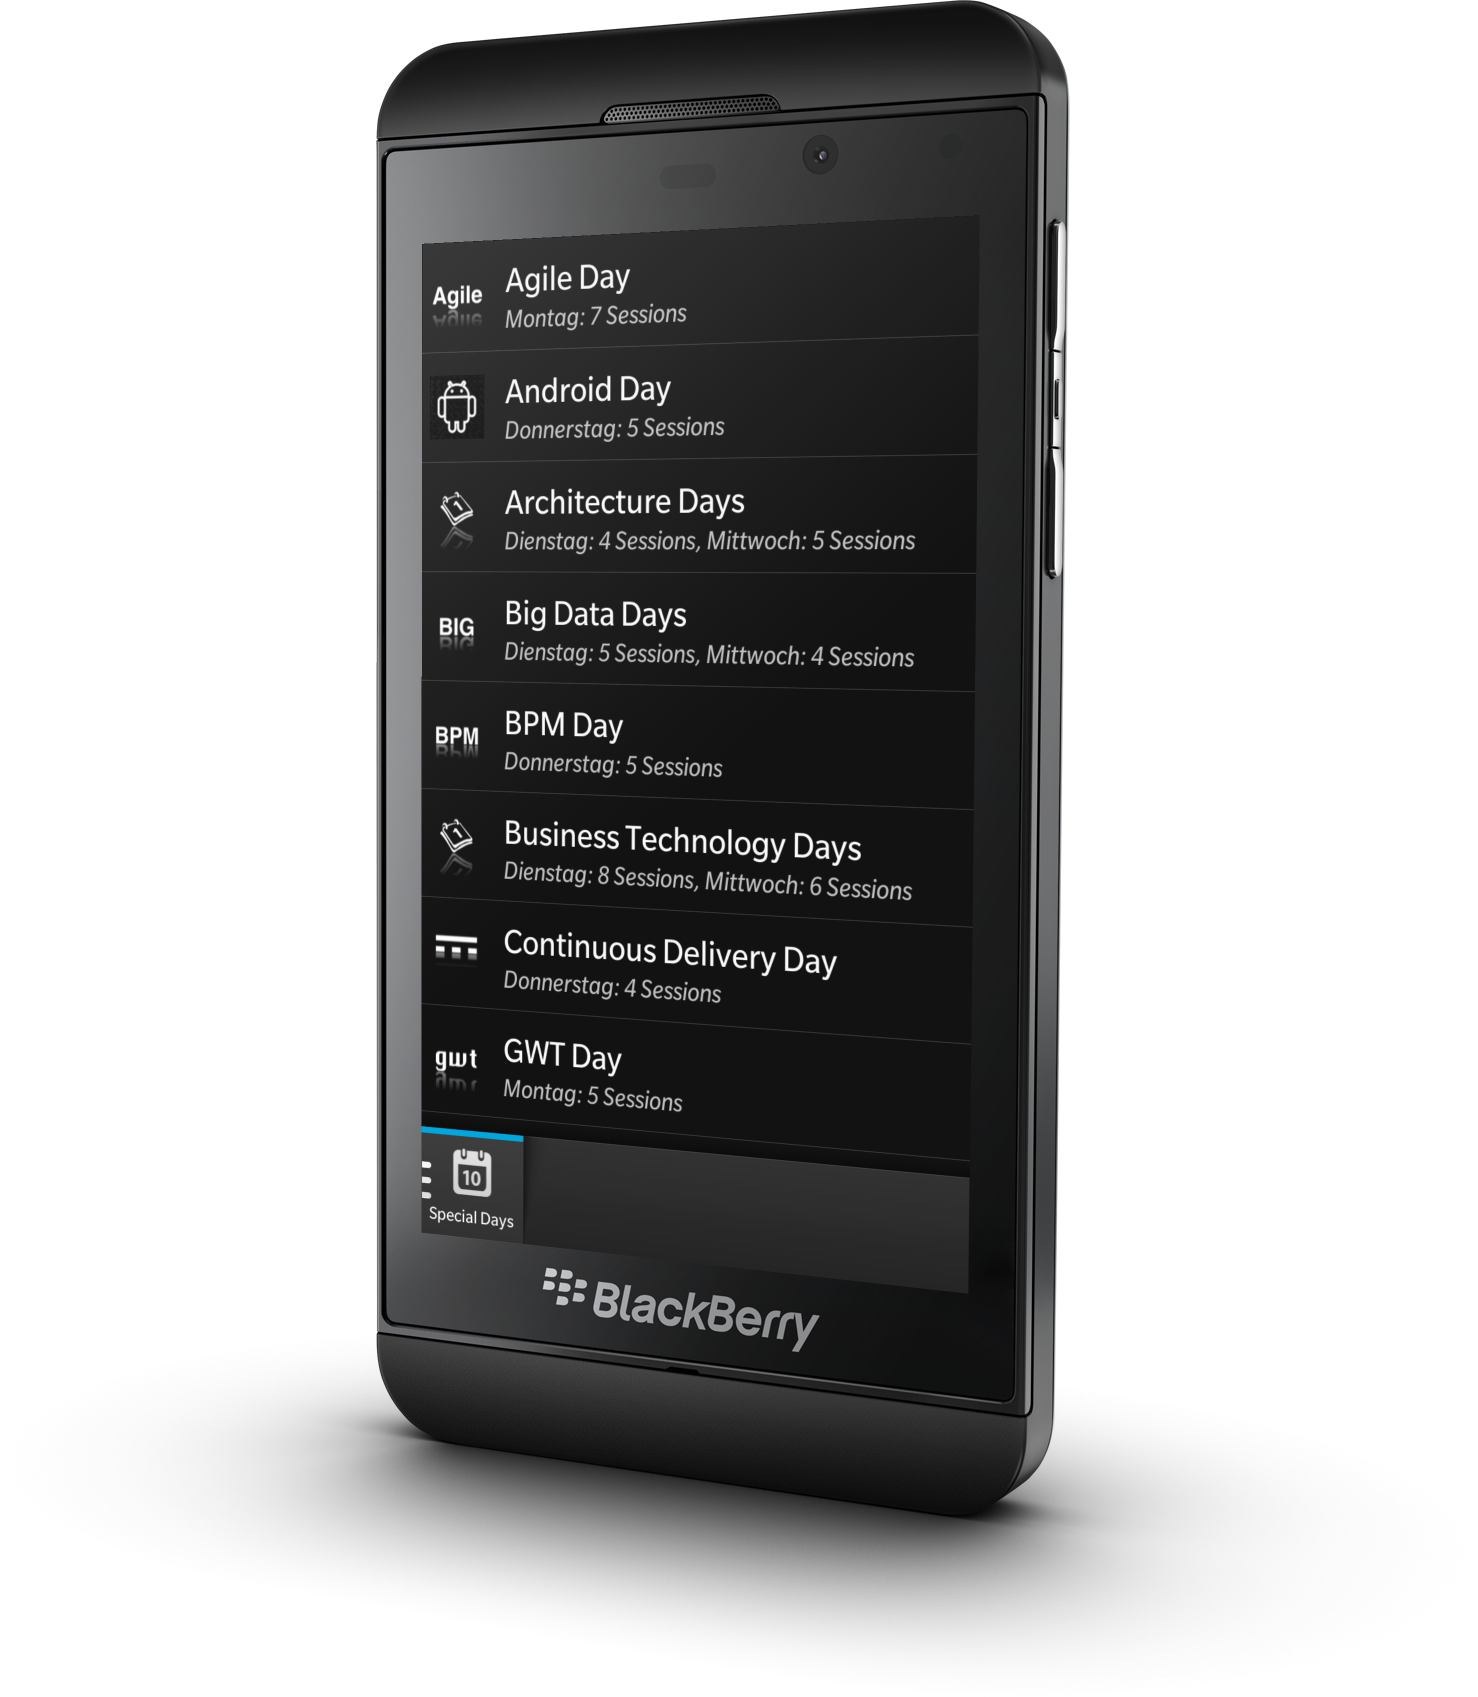 meet me blackberry app